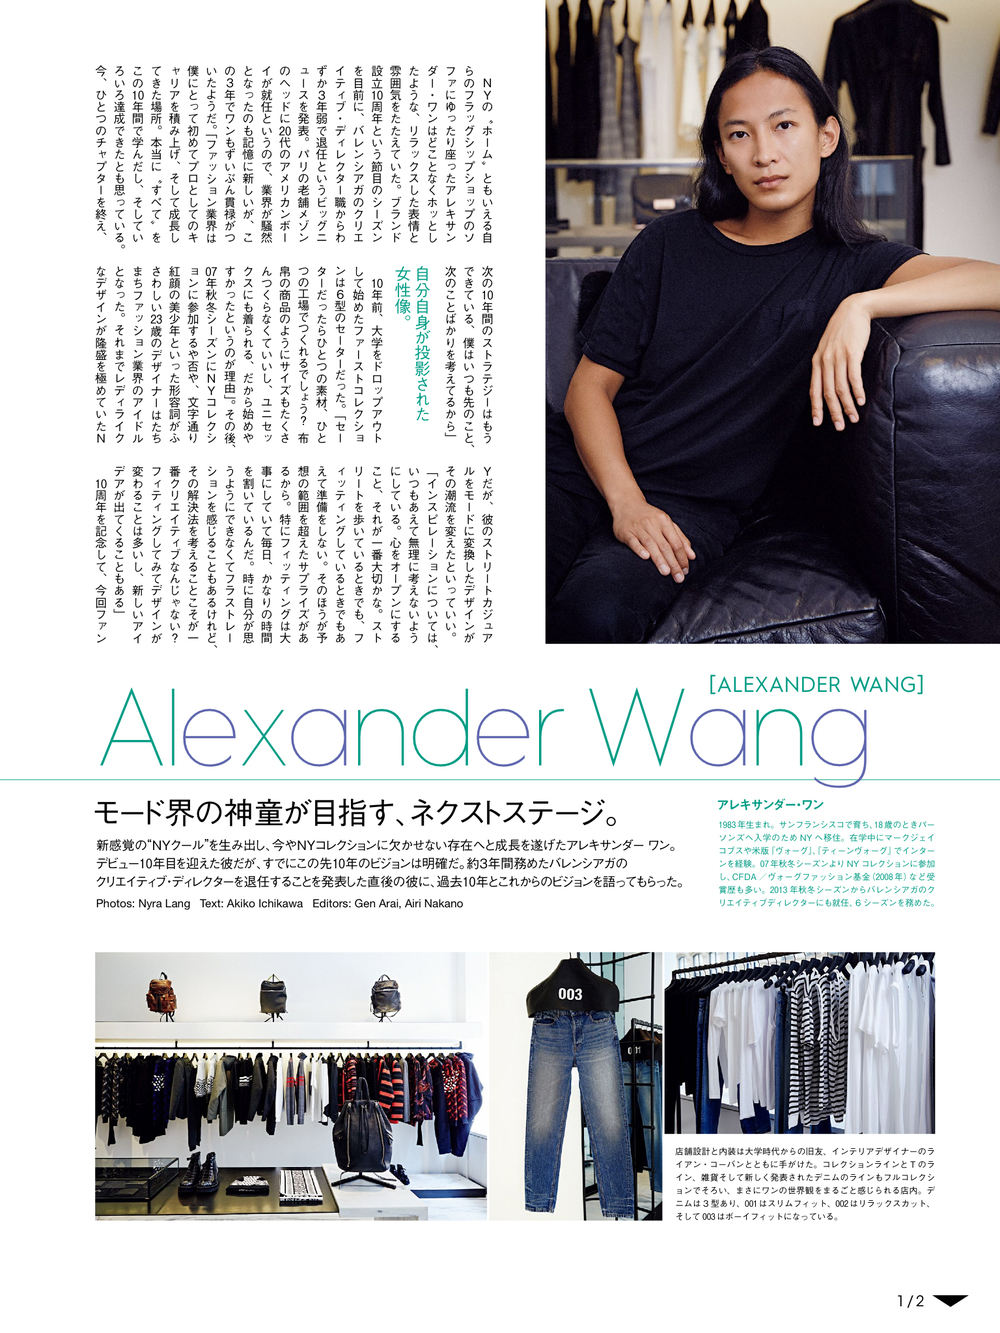 Alexander Wang for Vogue Japan